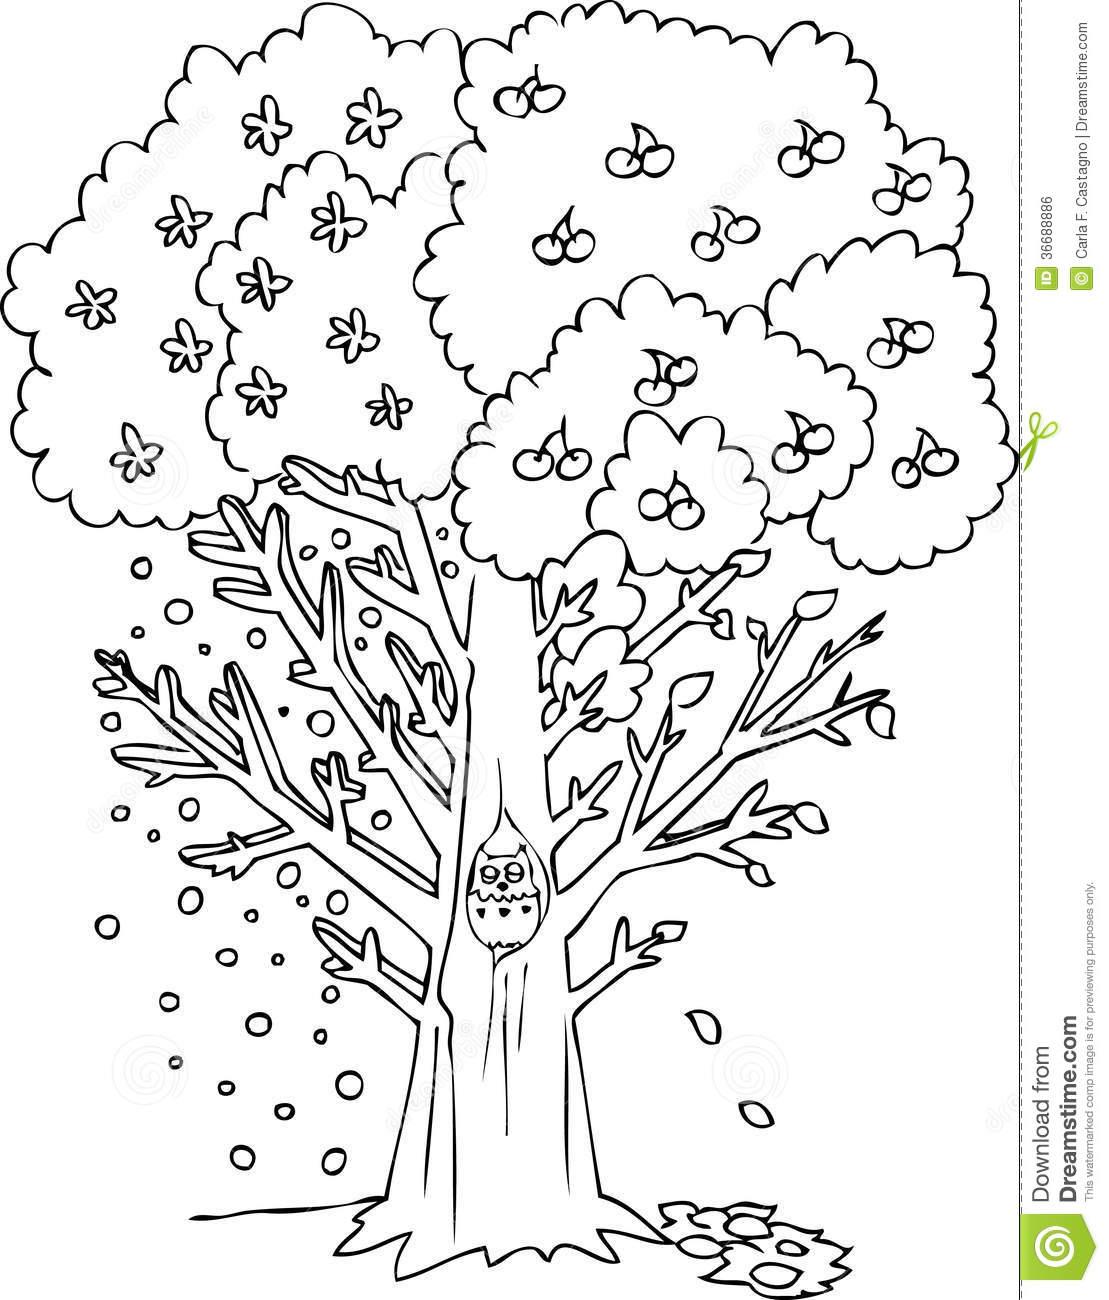 5 Best Images Of Of An Apple Tree Seasons Printable